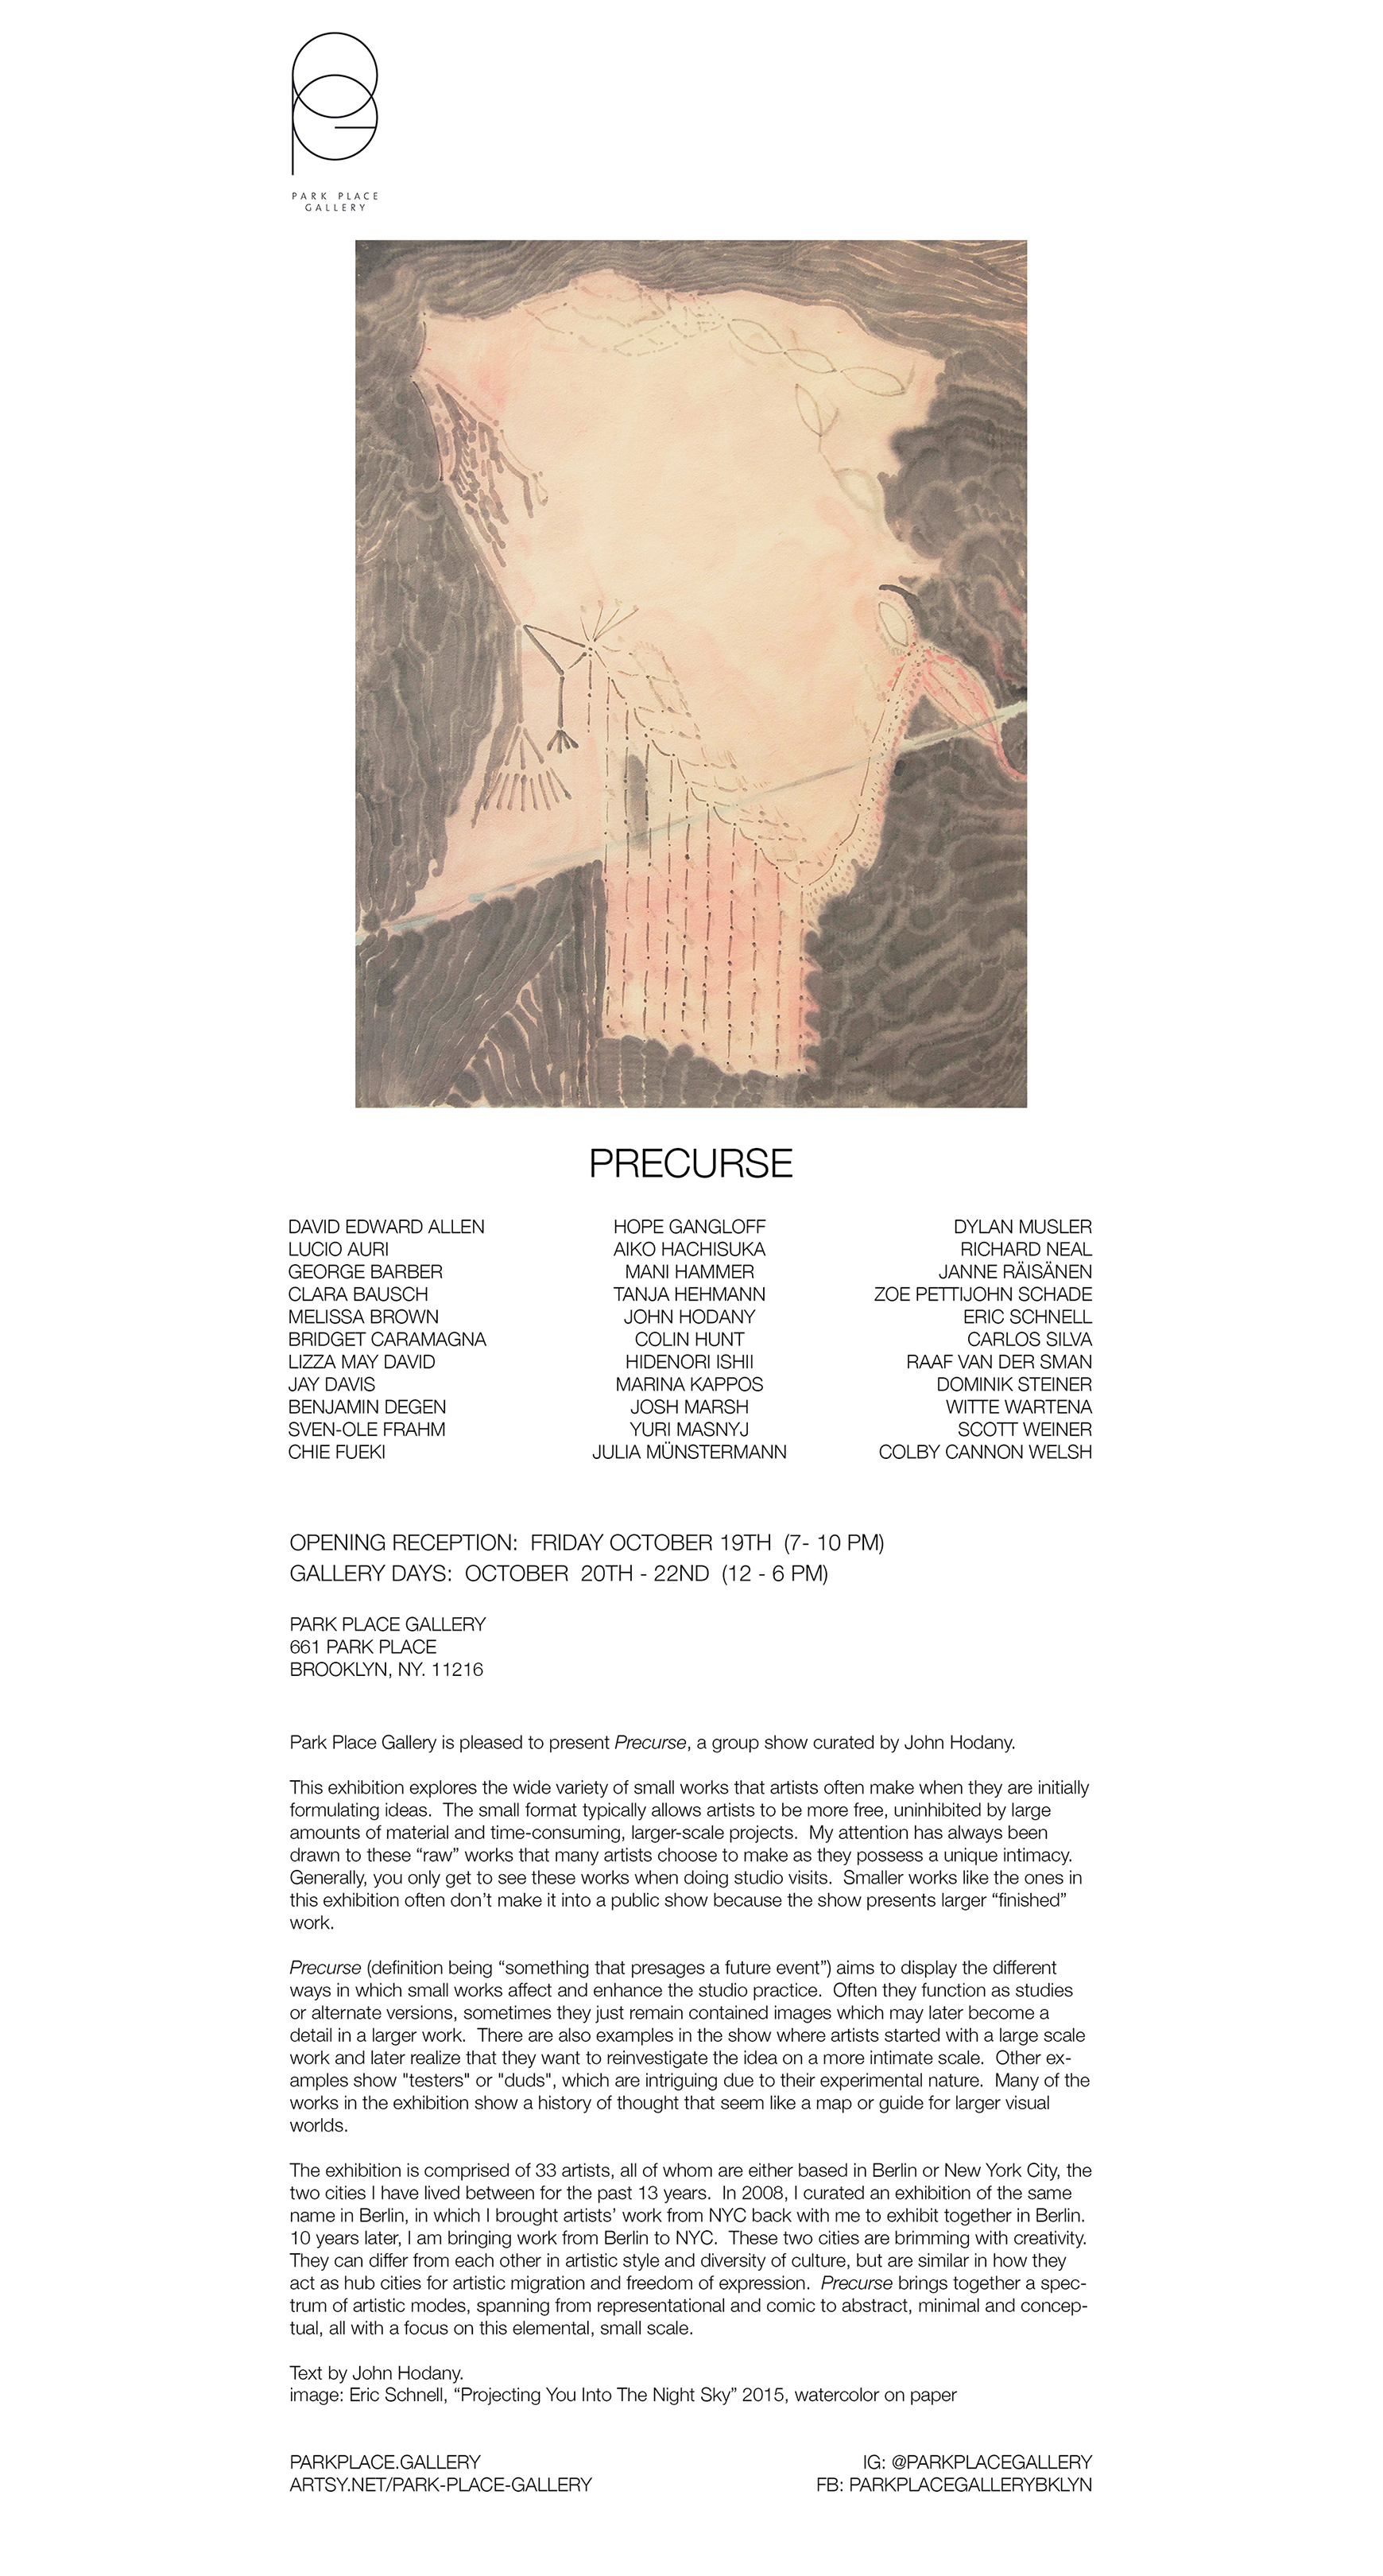 Precurse__park_place_gallery__curated_by_john_hodany